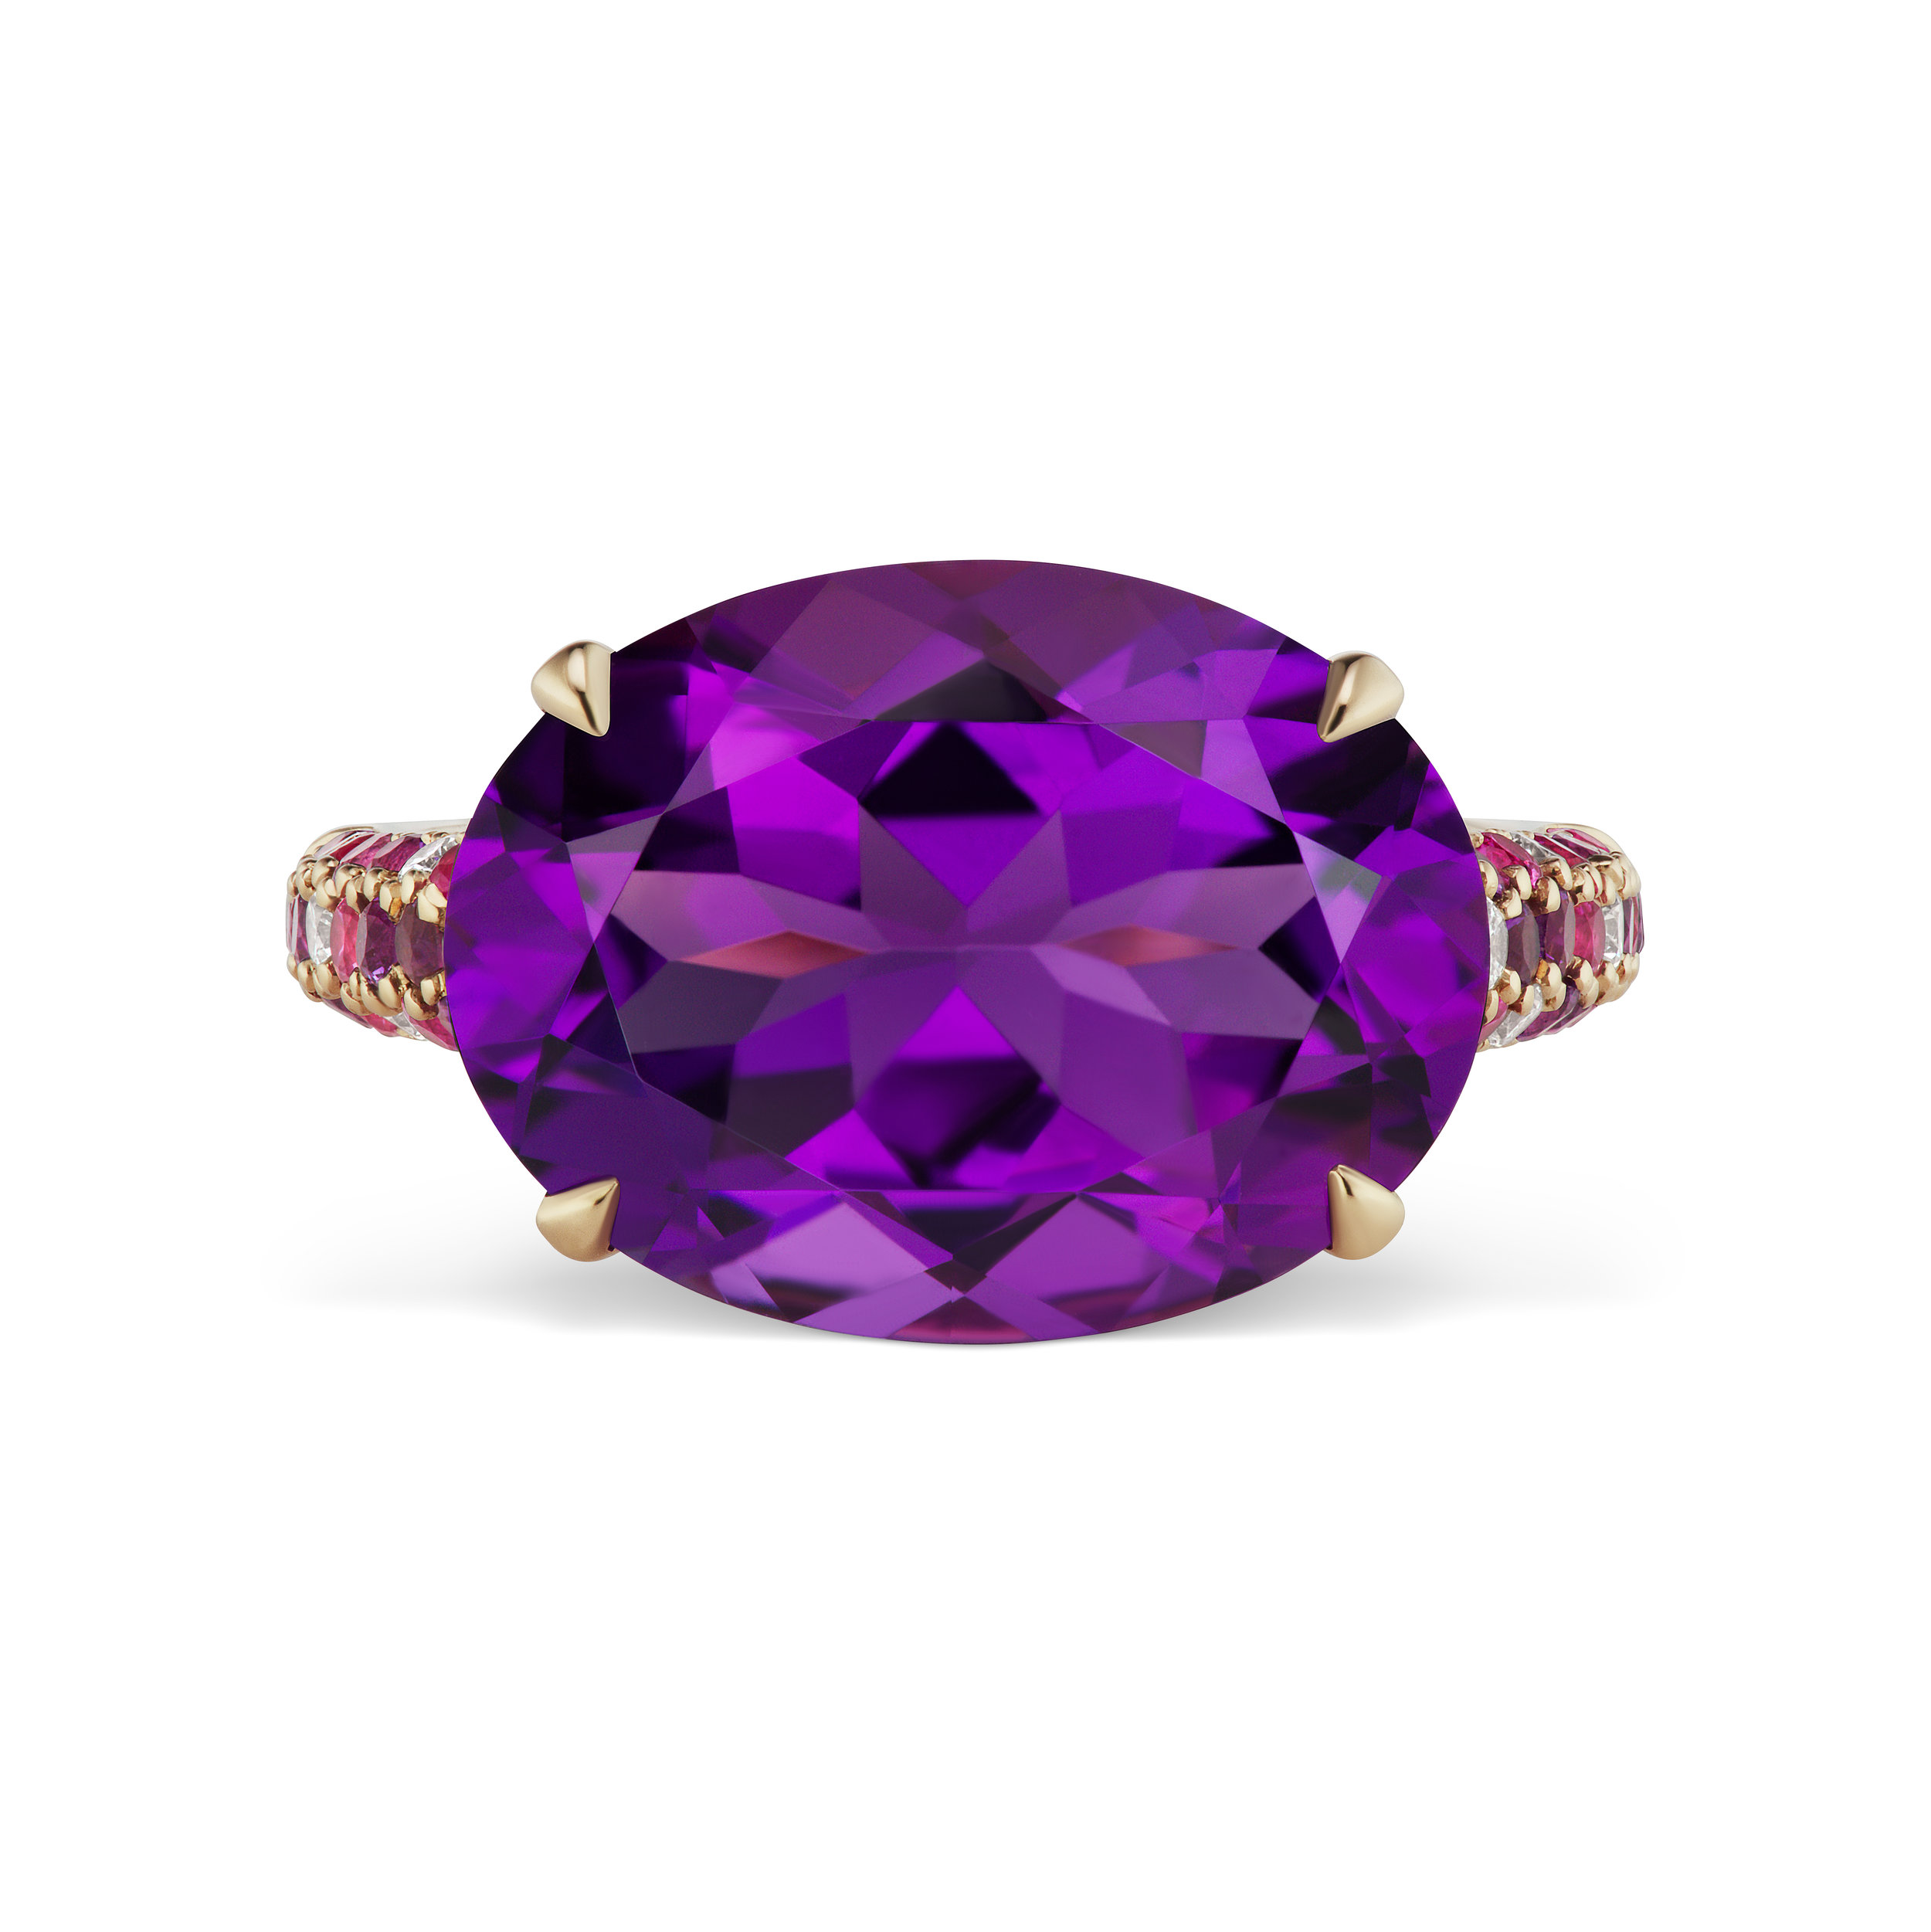 Amethyst ring with diamond and pink sapphire band, mounted in yellow gold.